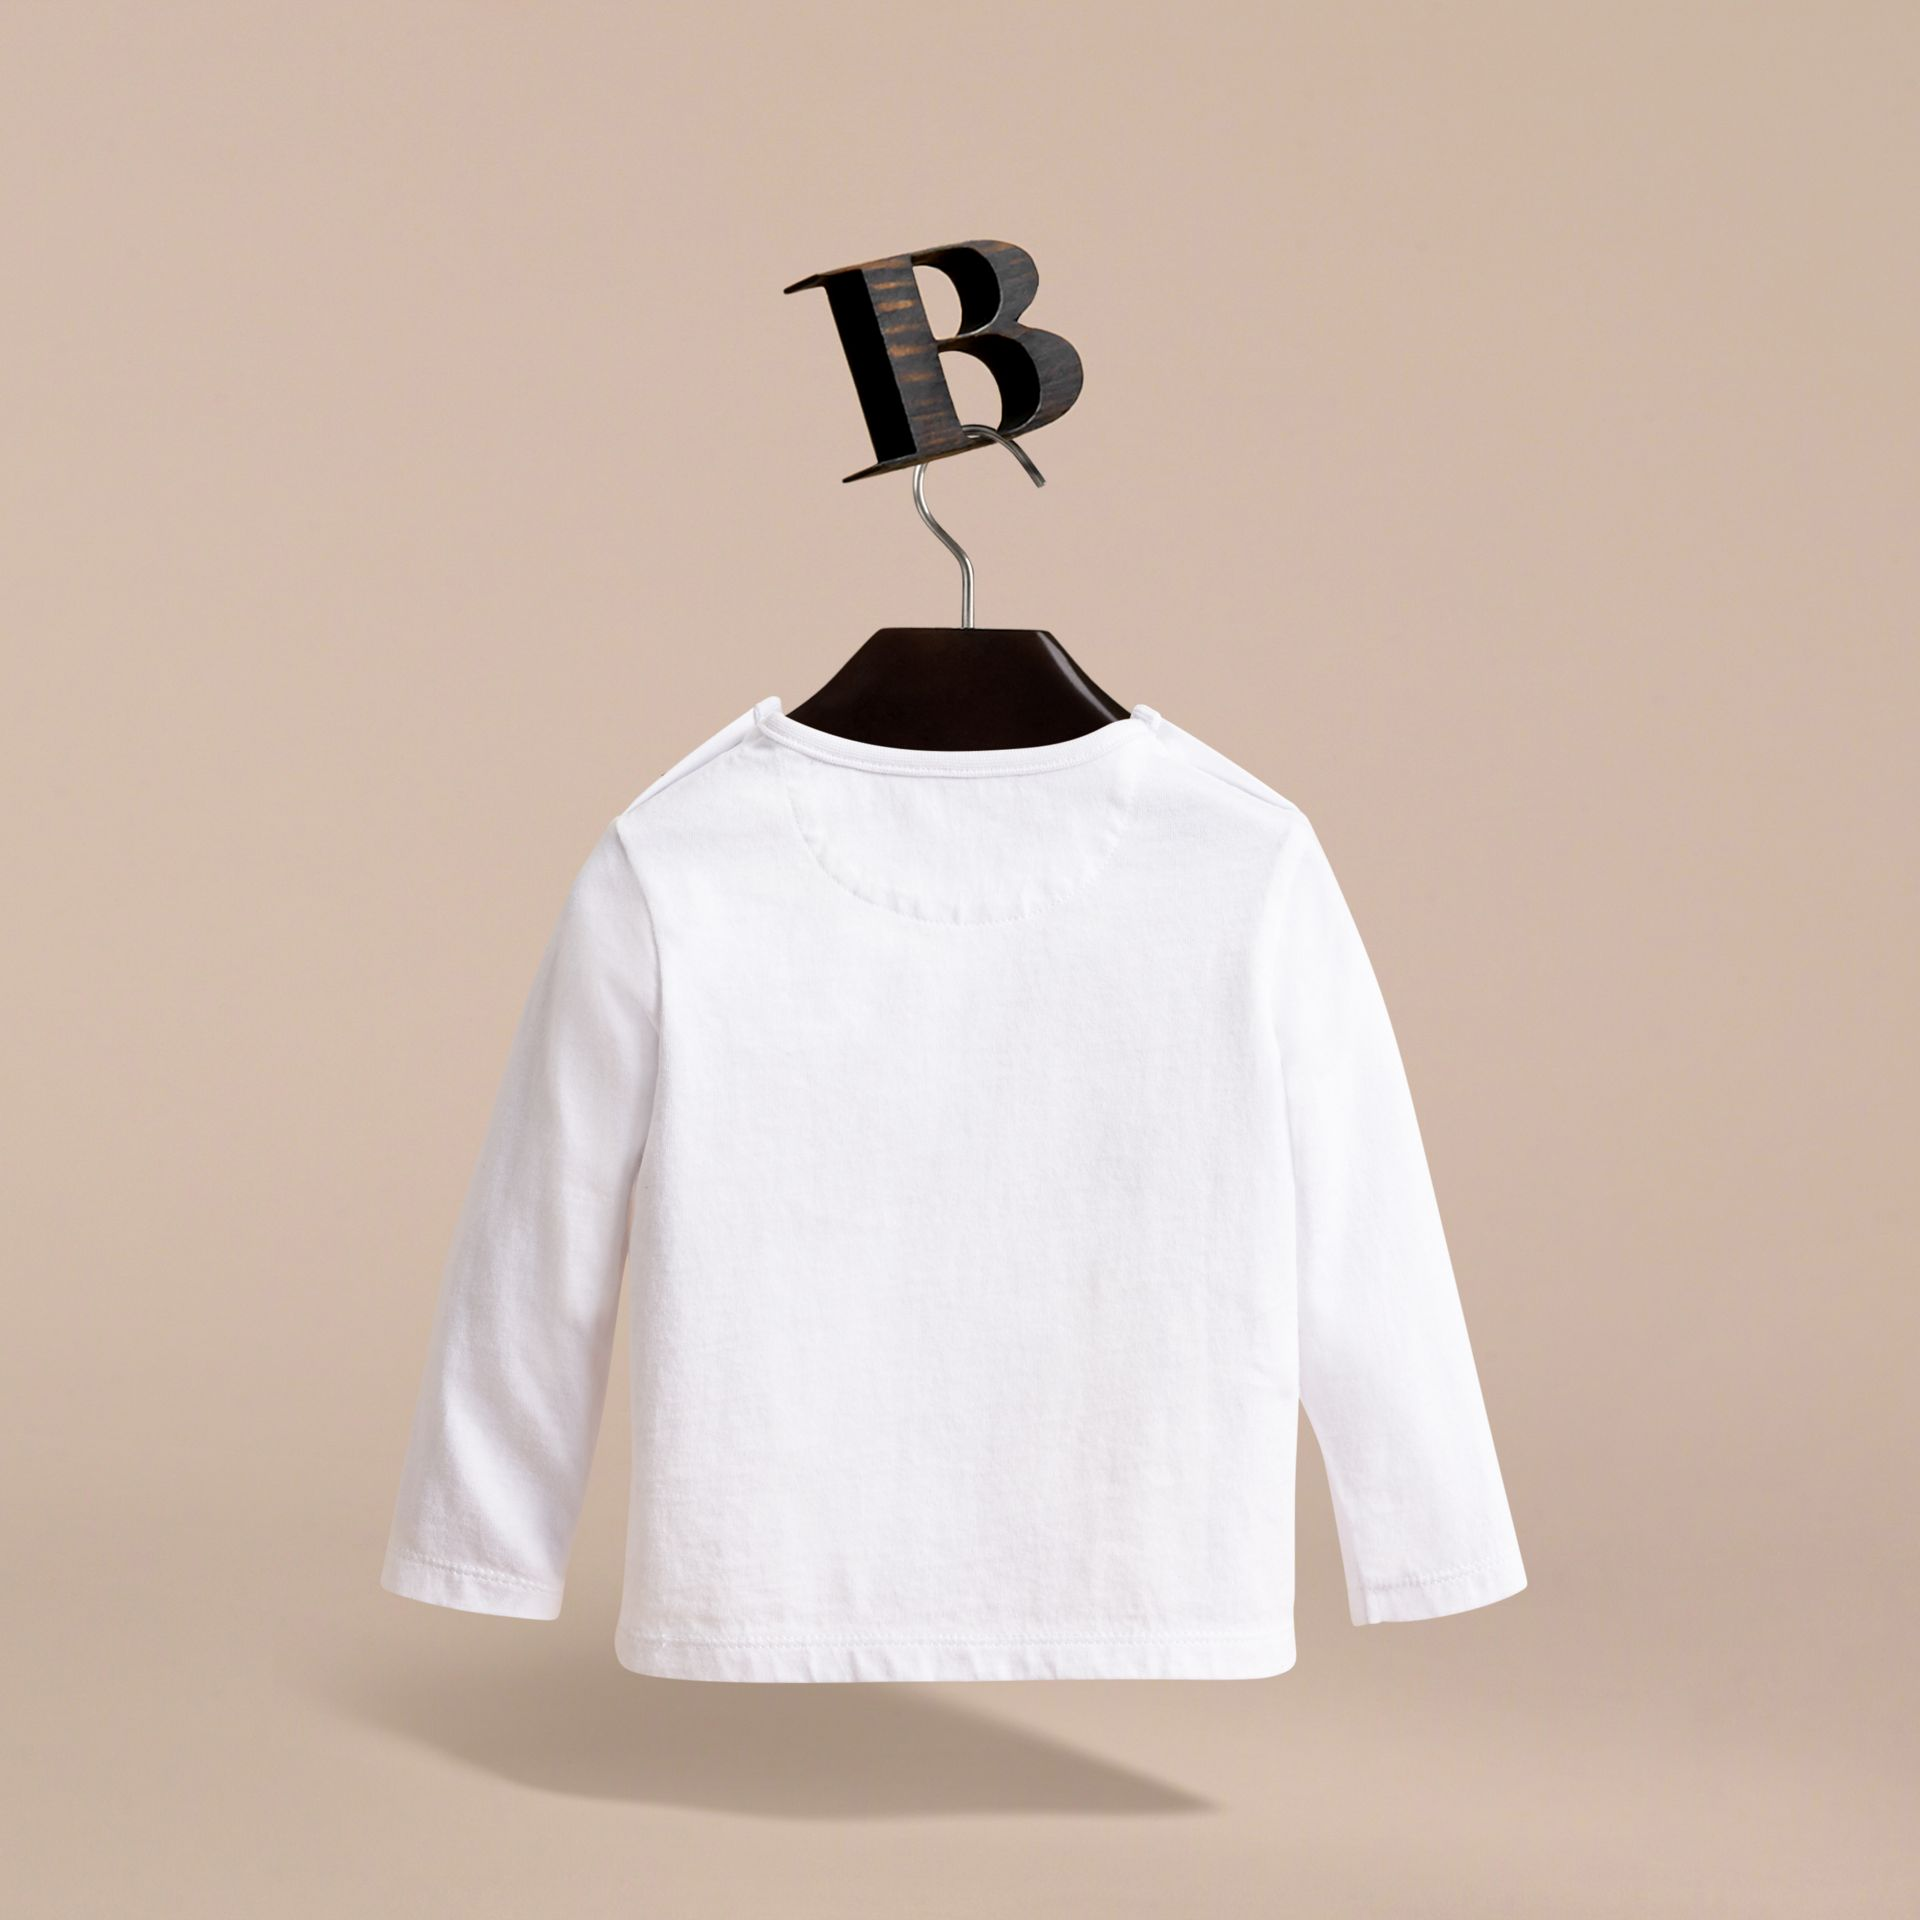 Thomas Bear Guardsman Print Cotton Top in White - Children | Burberry - gallery image 3